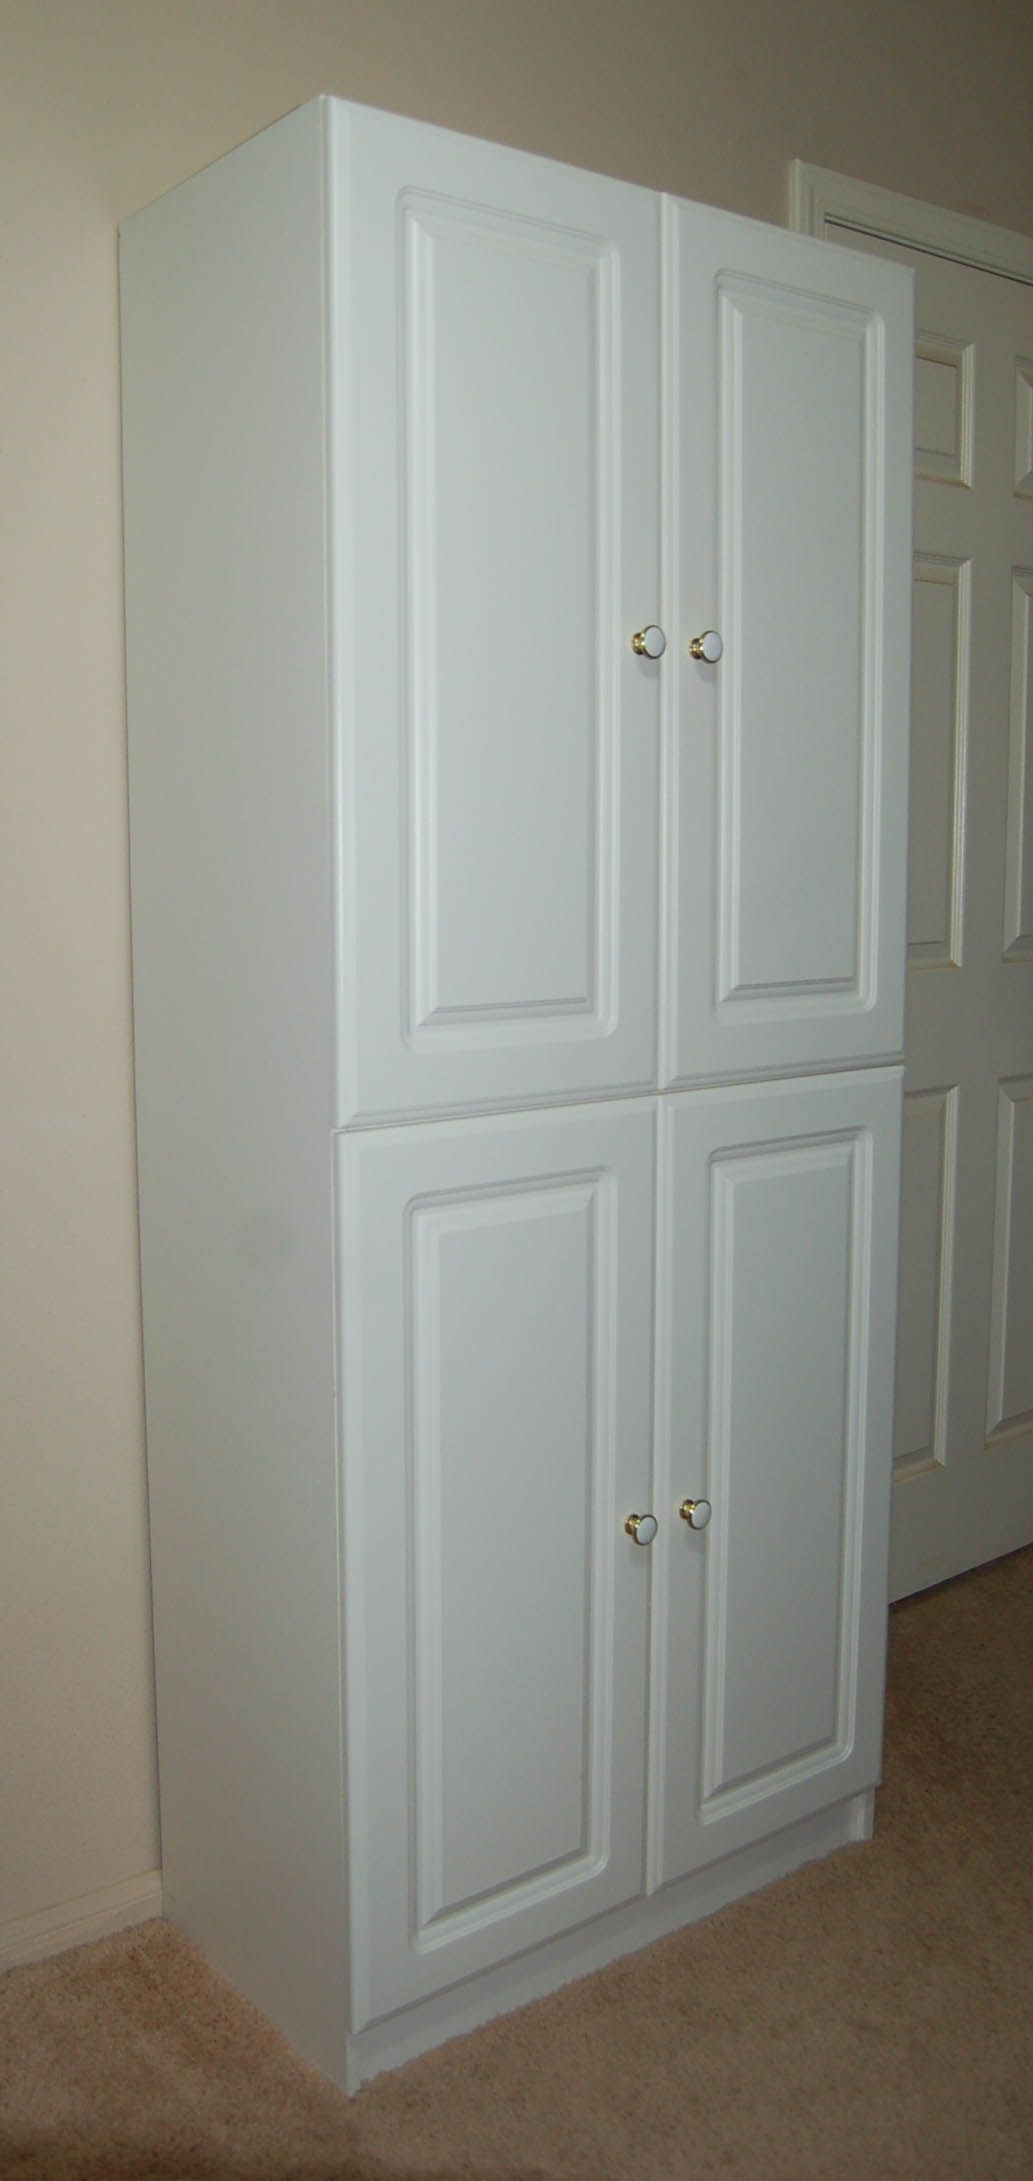 Awesome Tall White Painted Pine Wood Kitchen Cabinet With ...